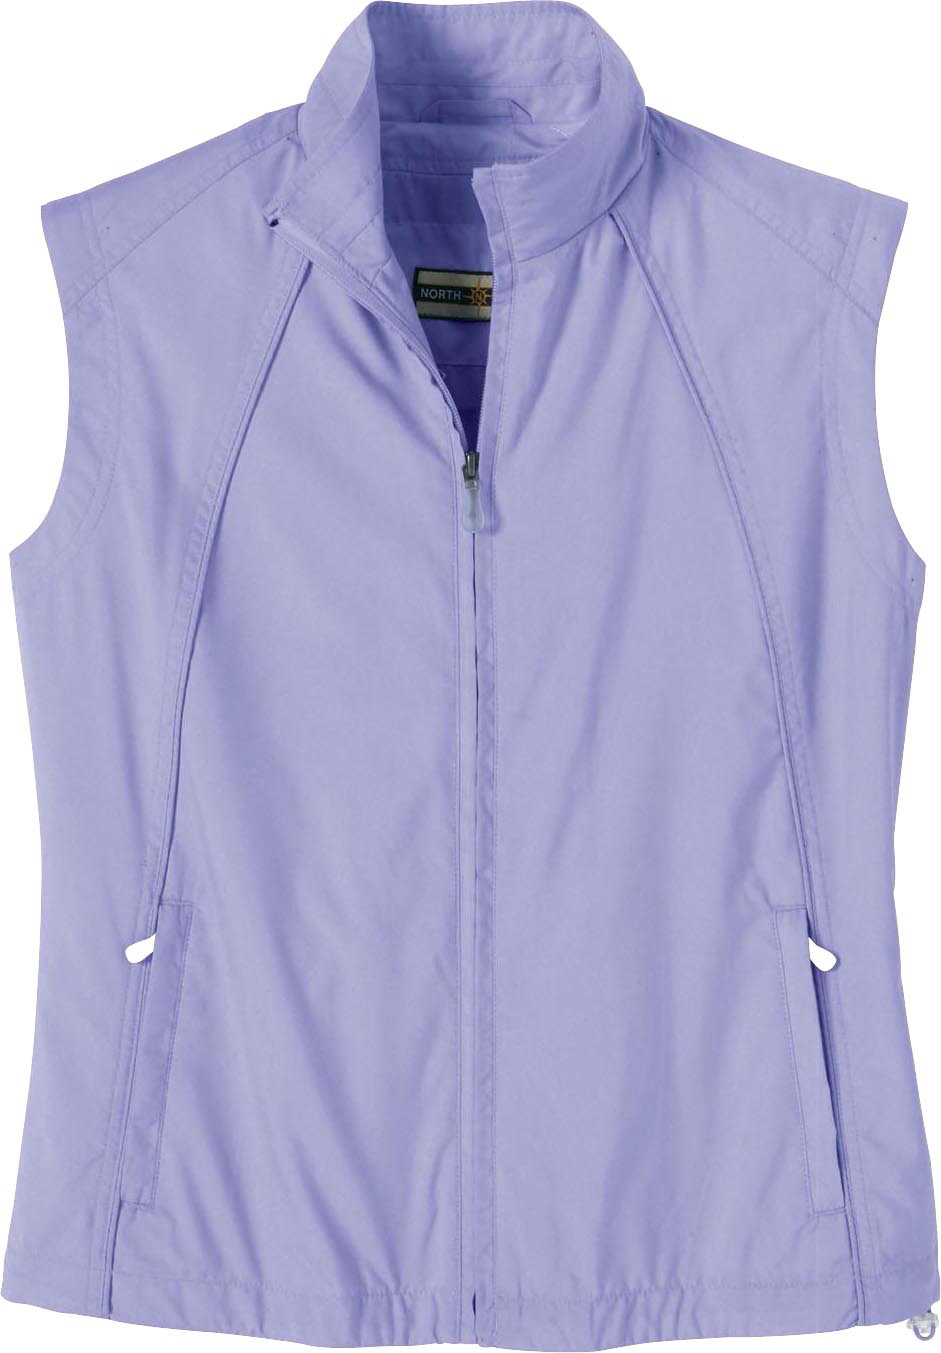 Ash City Windvests 78051 - Ladies' Full-Zip Lightweight ...